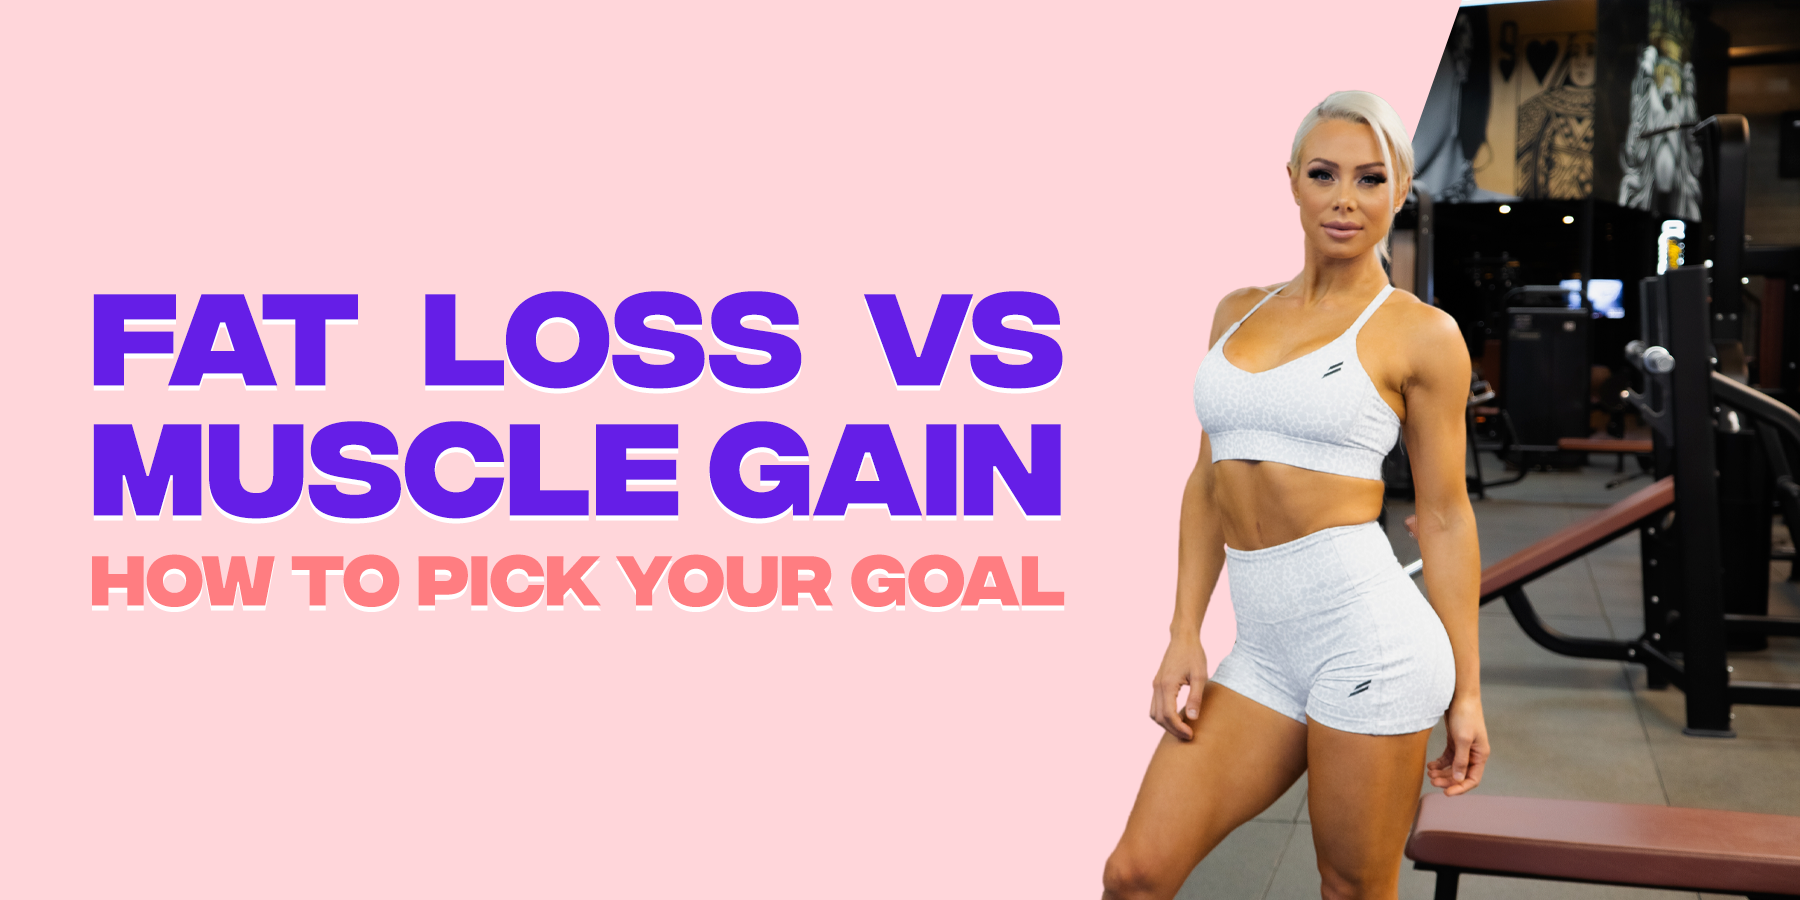 Fat Loss vs Muscle Gain: How To Pick Your Goal